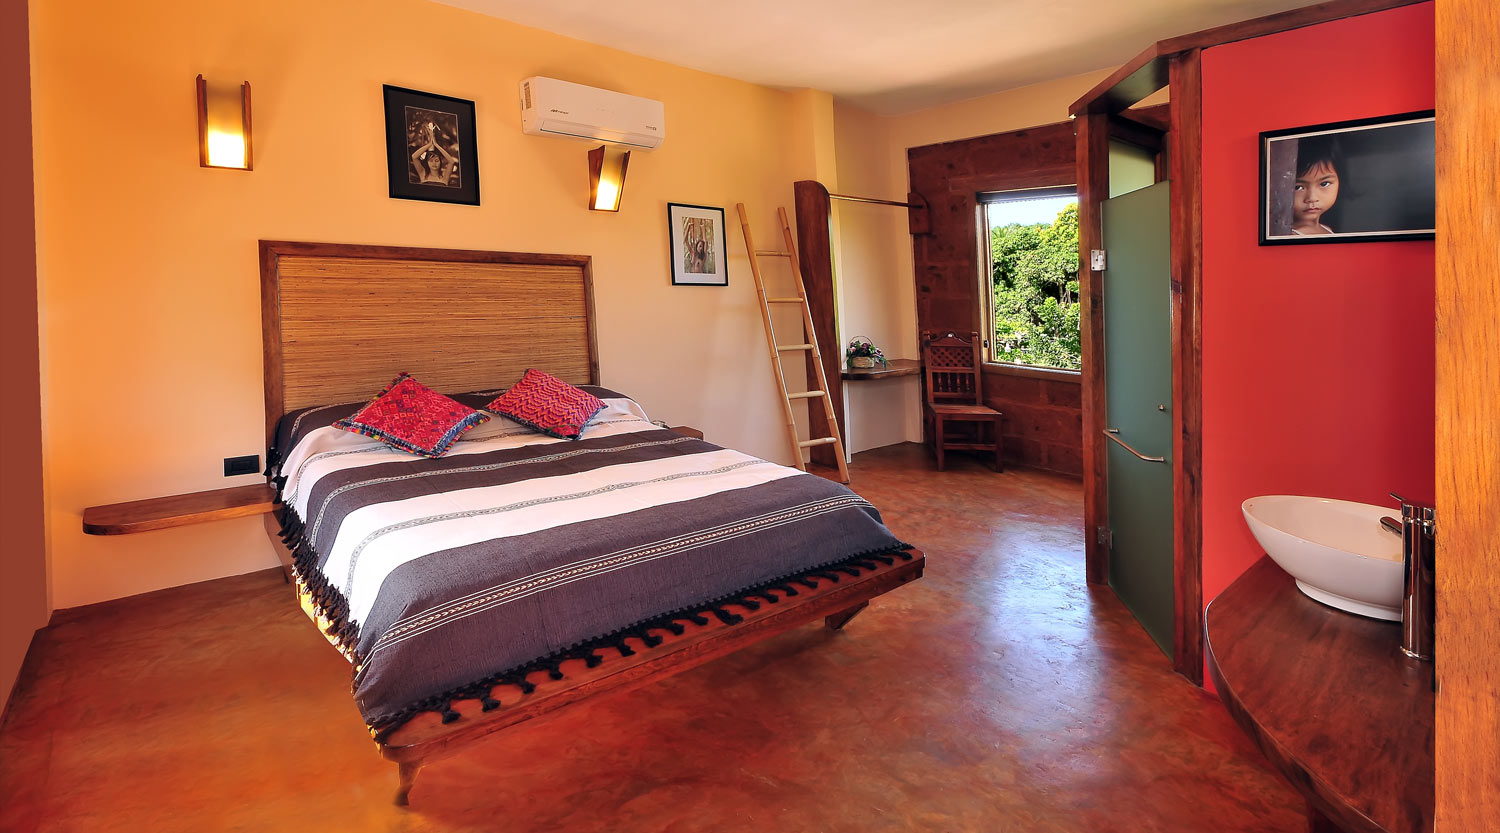 Double Room with queen-size bed and mountain view